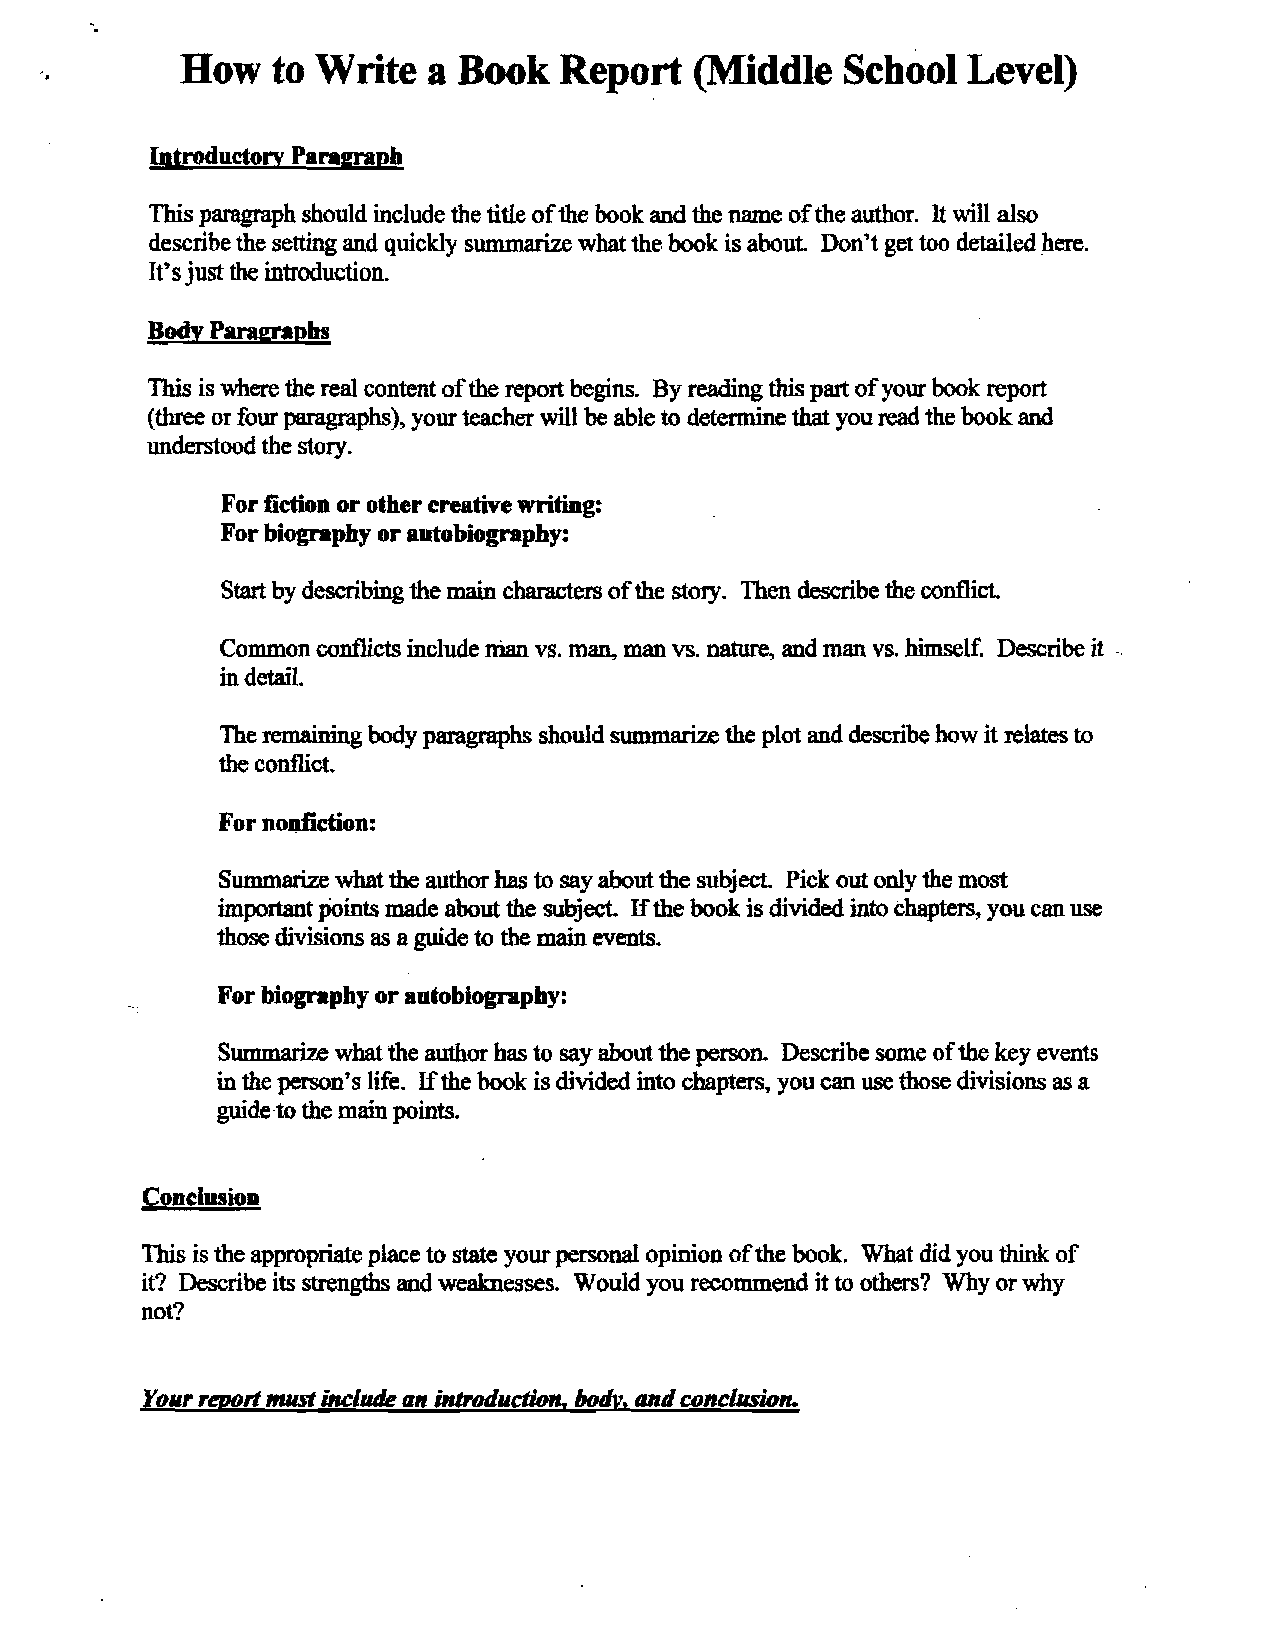 How To Write A Book Report For High School The Canterbury Tales Essay Book Review Template Book Report Templates Book Report Template Middle School